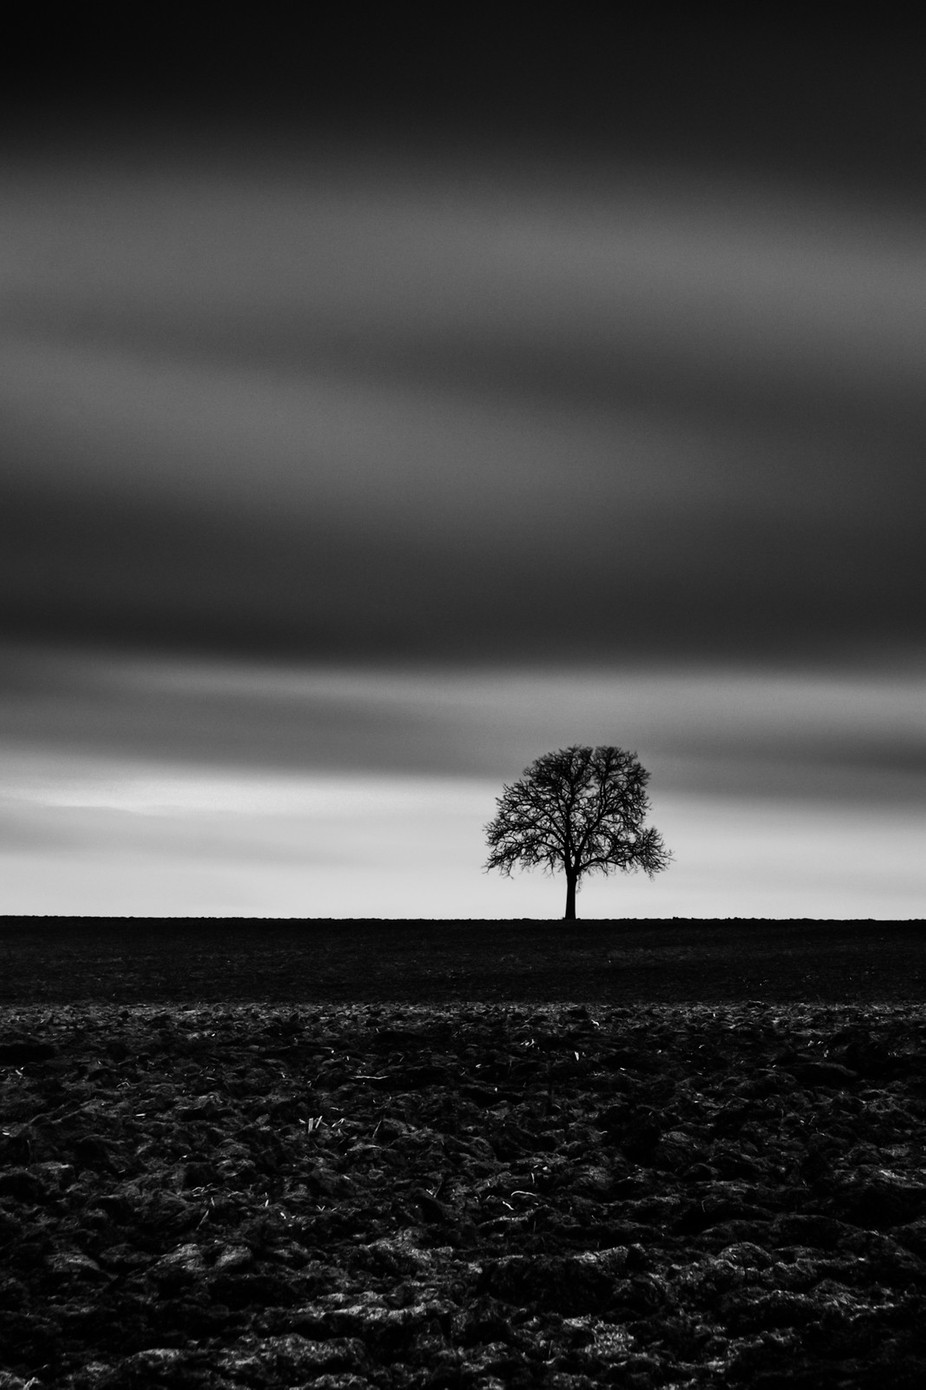 Lonely by matayosoixantequatorze - The Moving Clouds Photo Contest